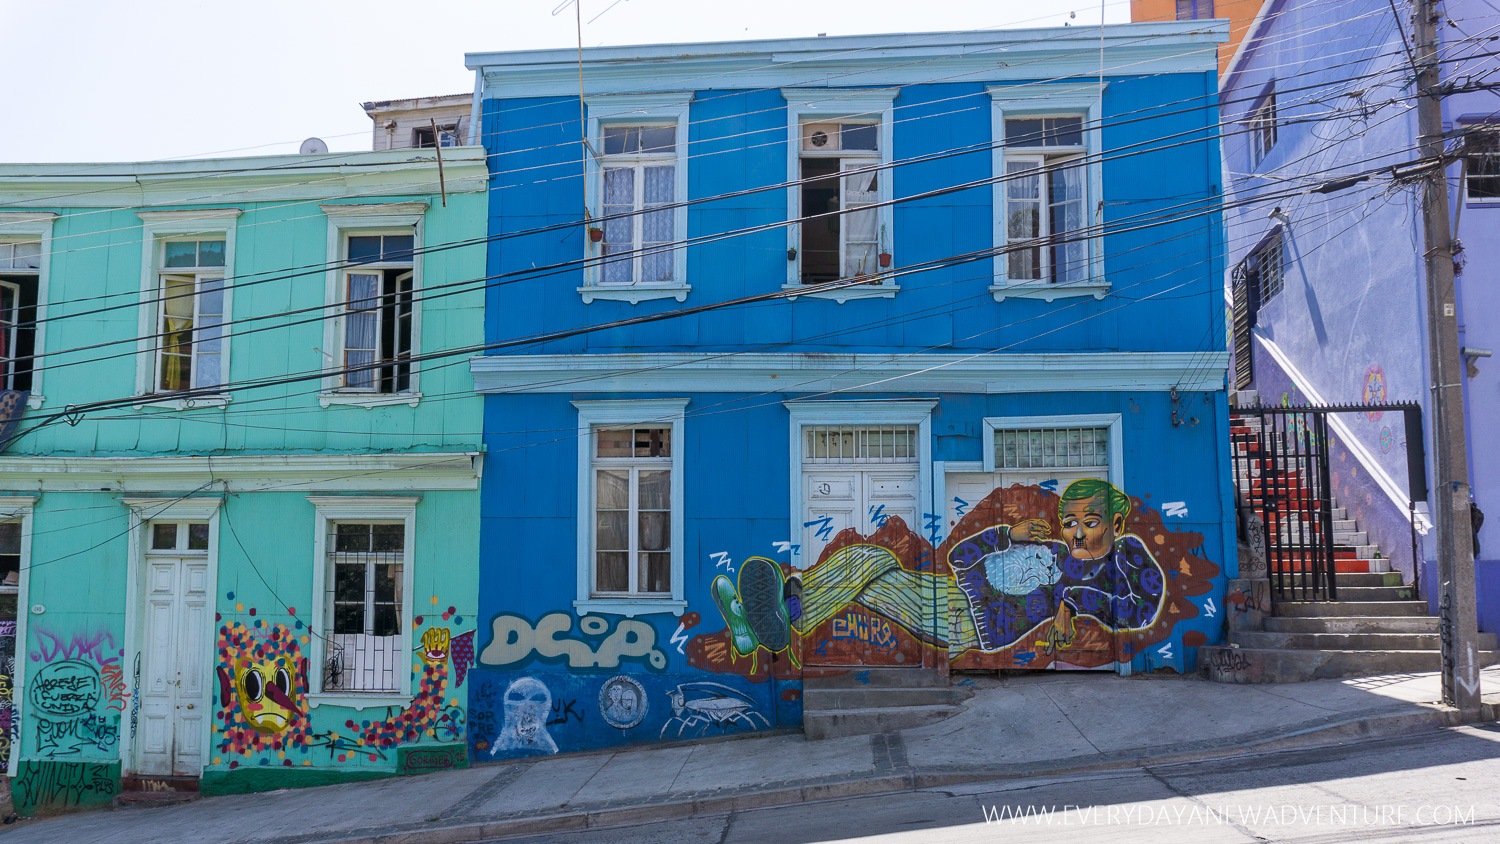 Street art was all over the colorful buildings of Valparaiso.